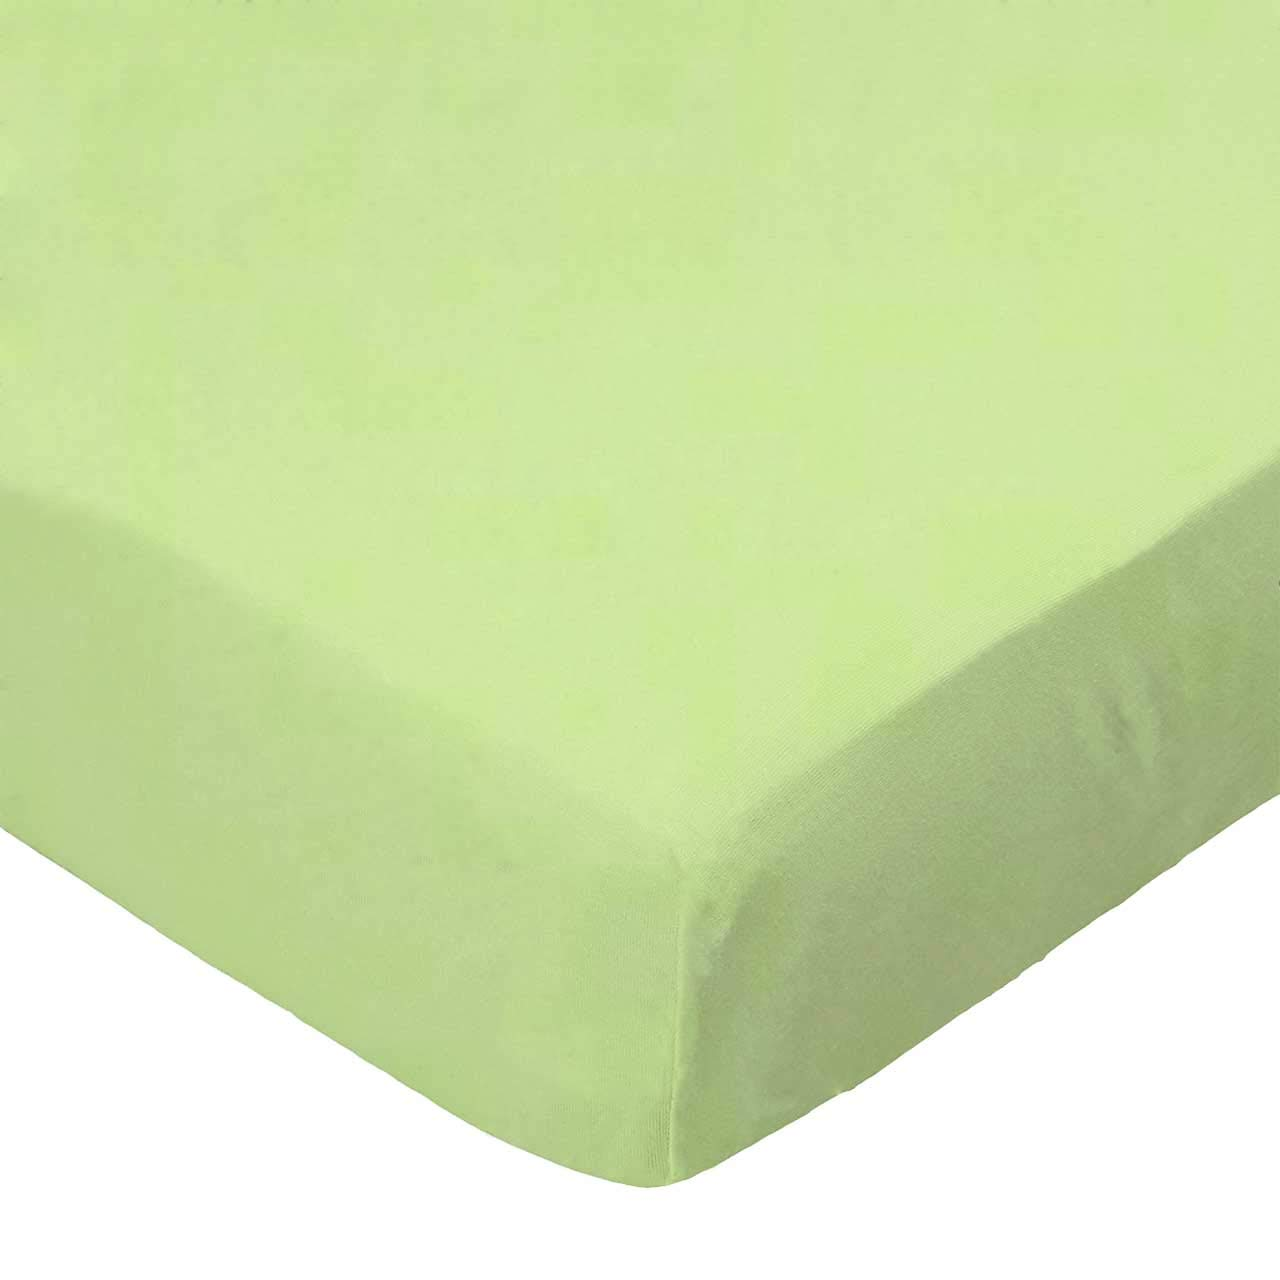 SheetWorld Fitted Bassinet Sheet - Mint Woven - Made In USA by sheetworld   B00L4A21FC